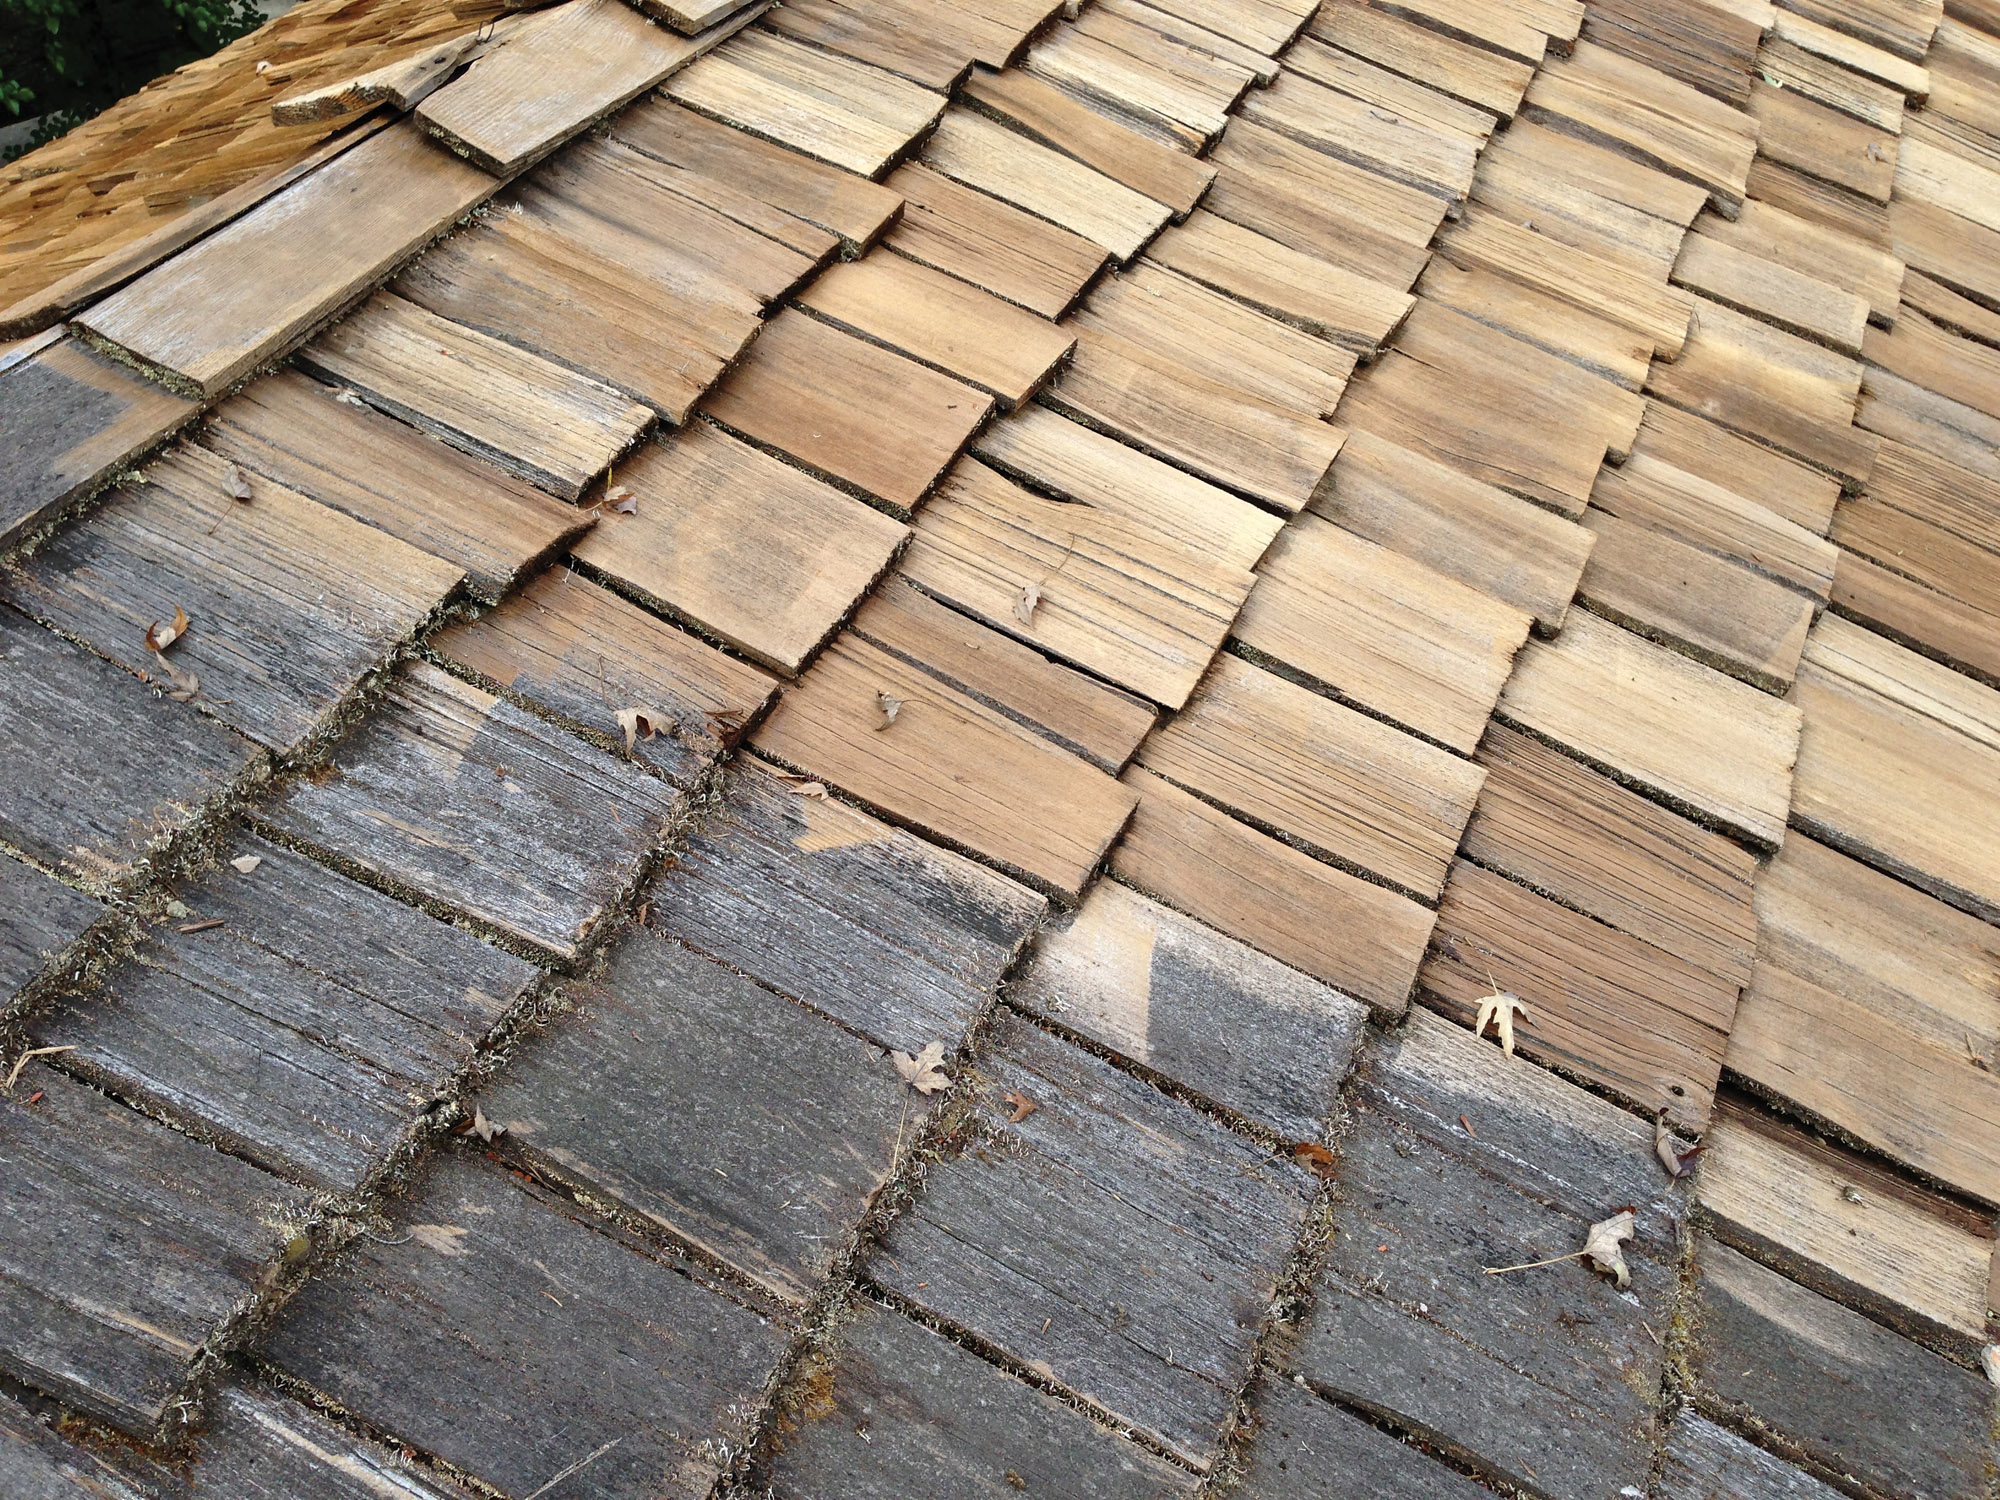 shingles with trapped moisture